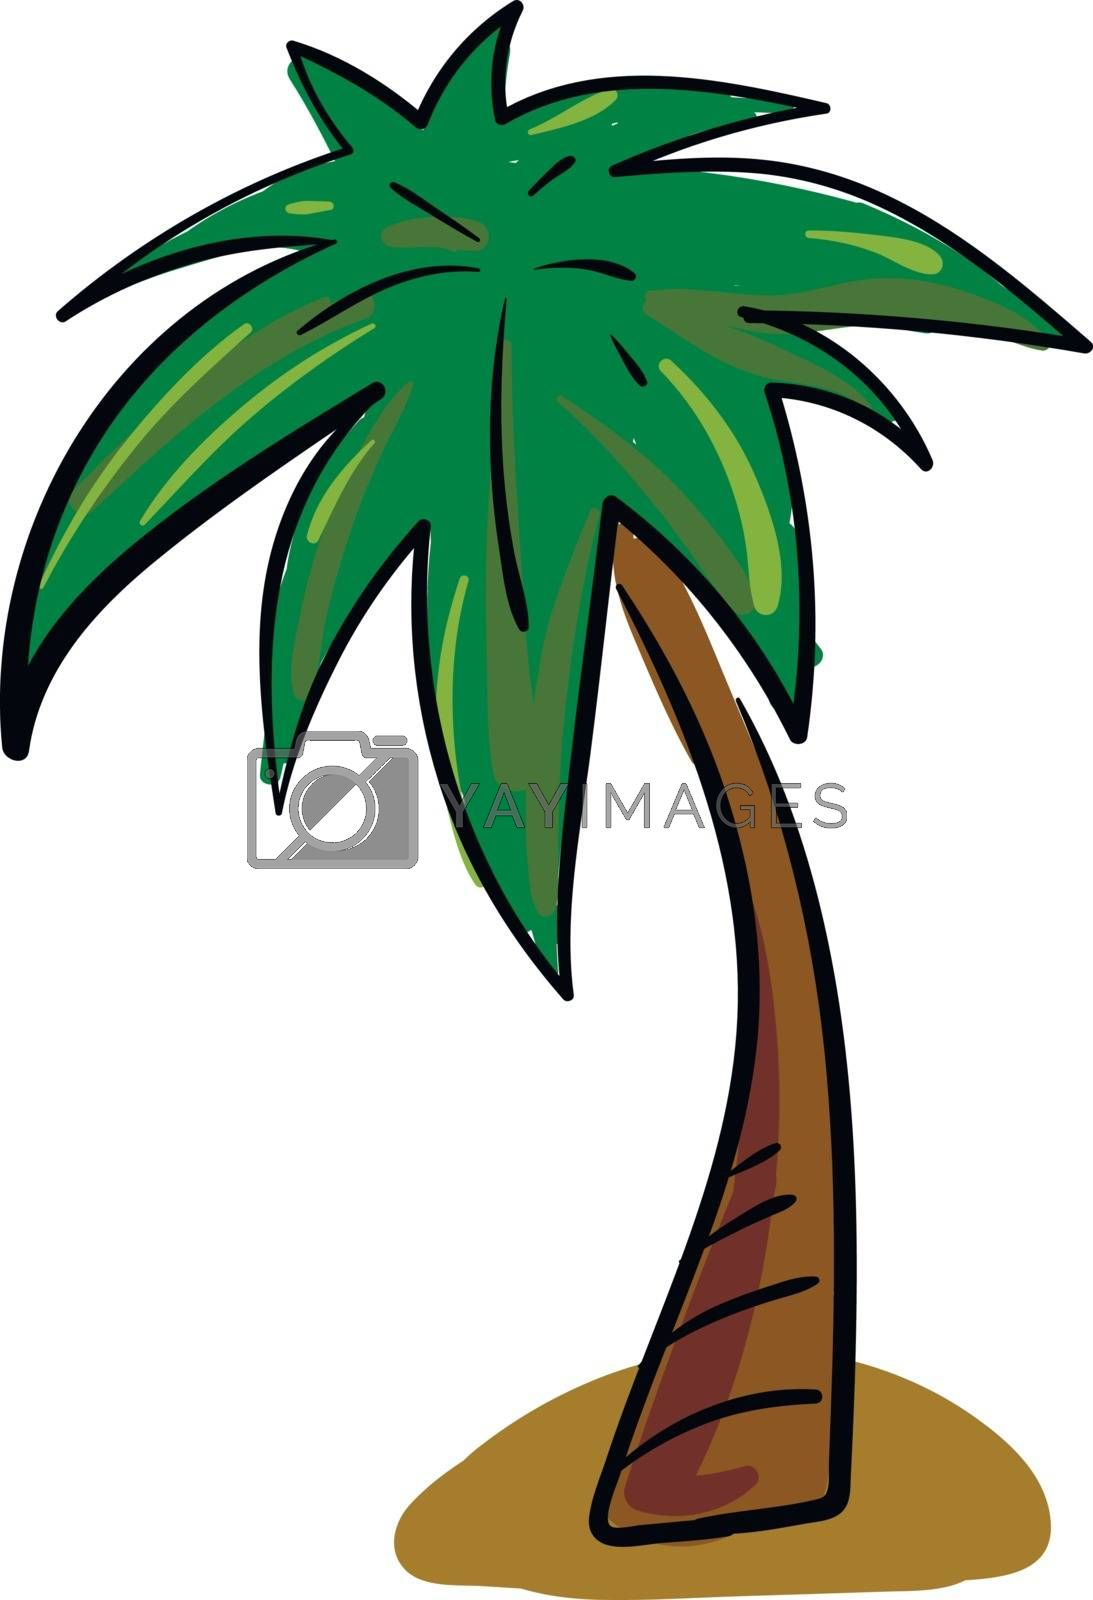 A palm tree having a crown of very long feathered or fan-shaped leaves above the land over a white background, vector, color drawing or illustration.